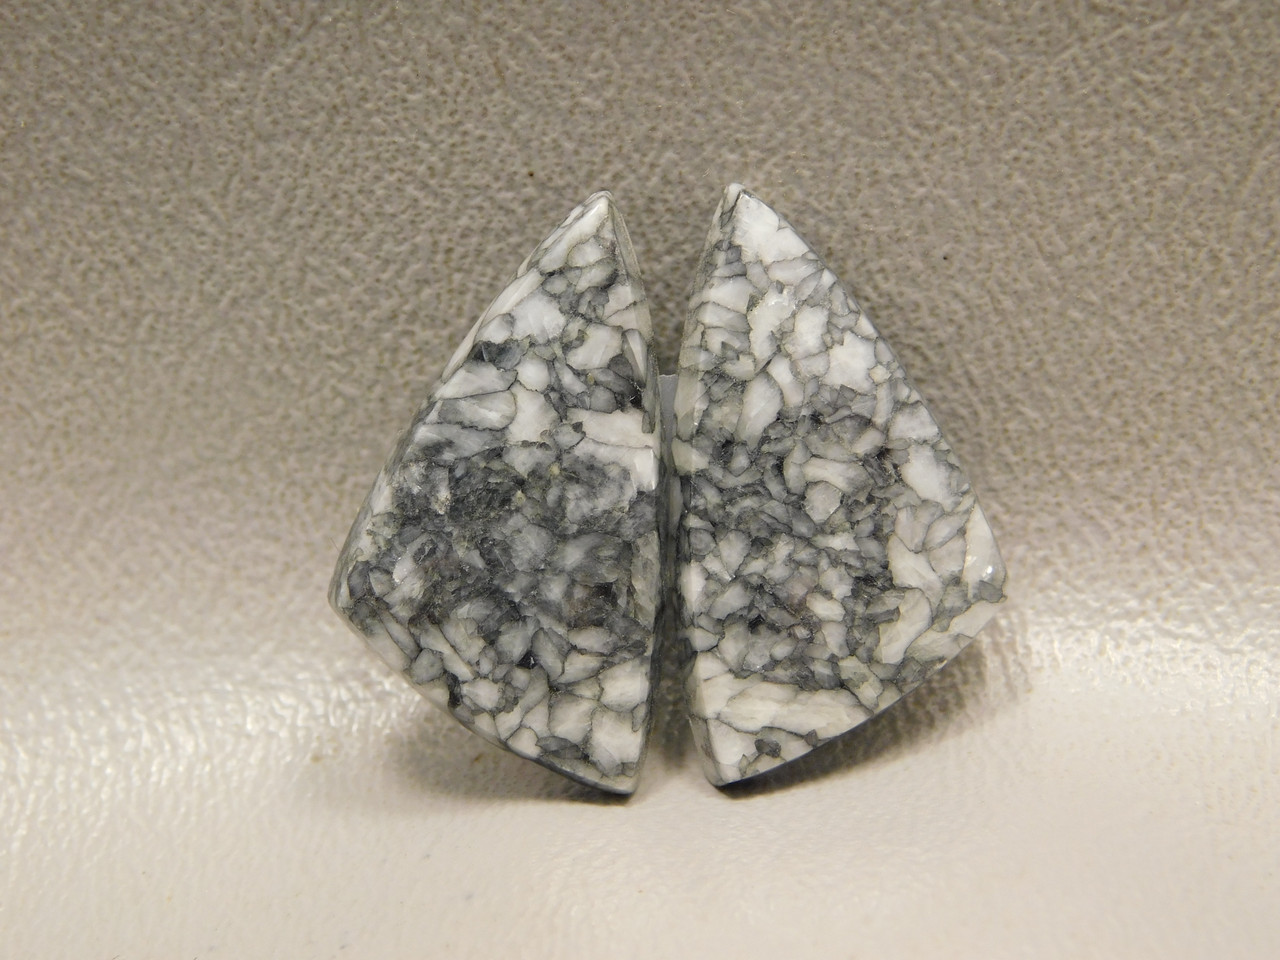 Pinolith or Pinolite Magnesite Matched Pairs Stones Cabochons #2